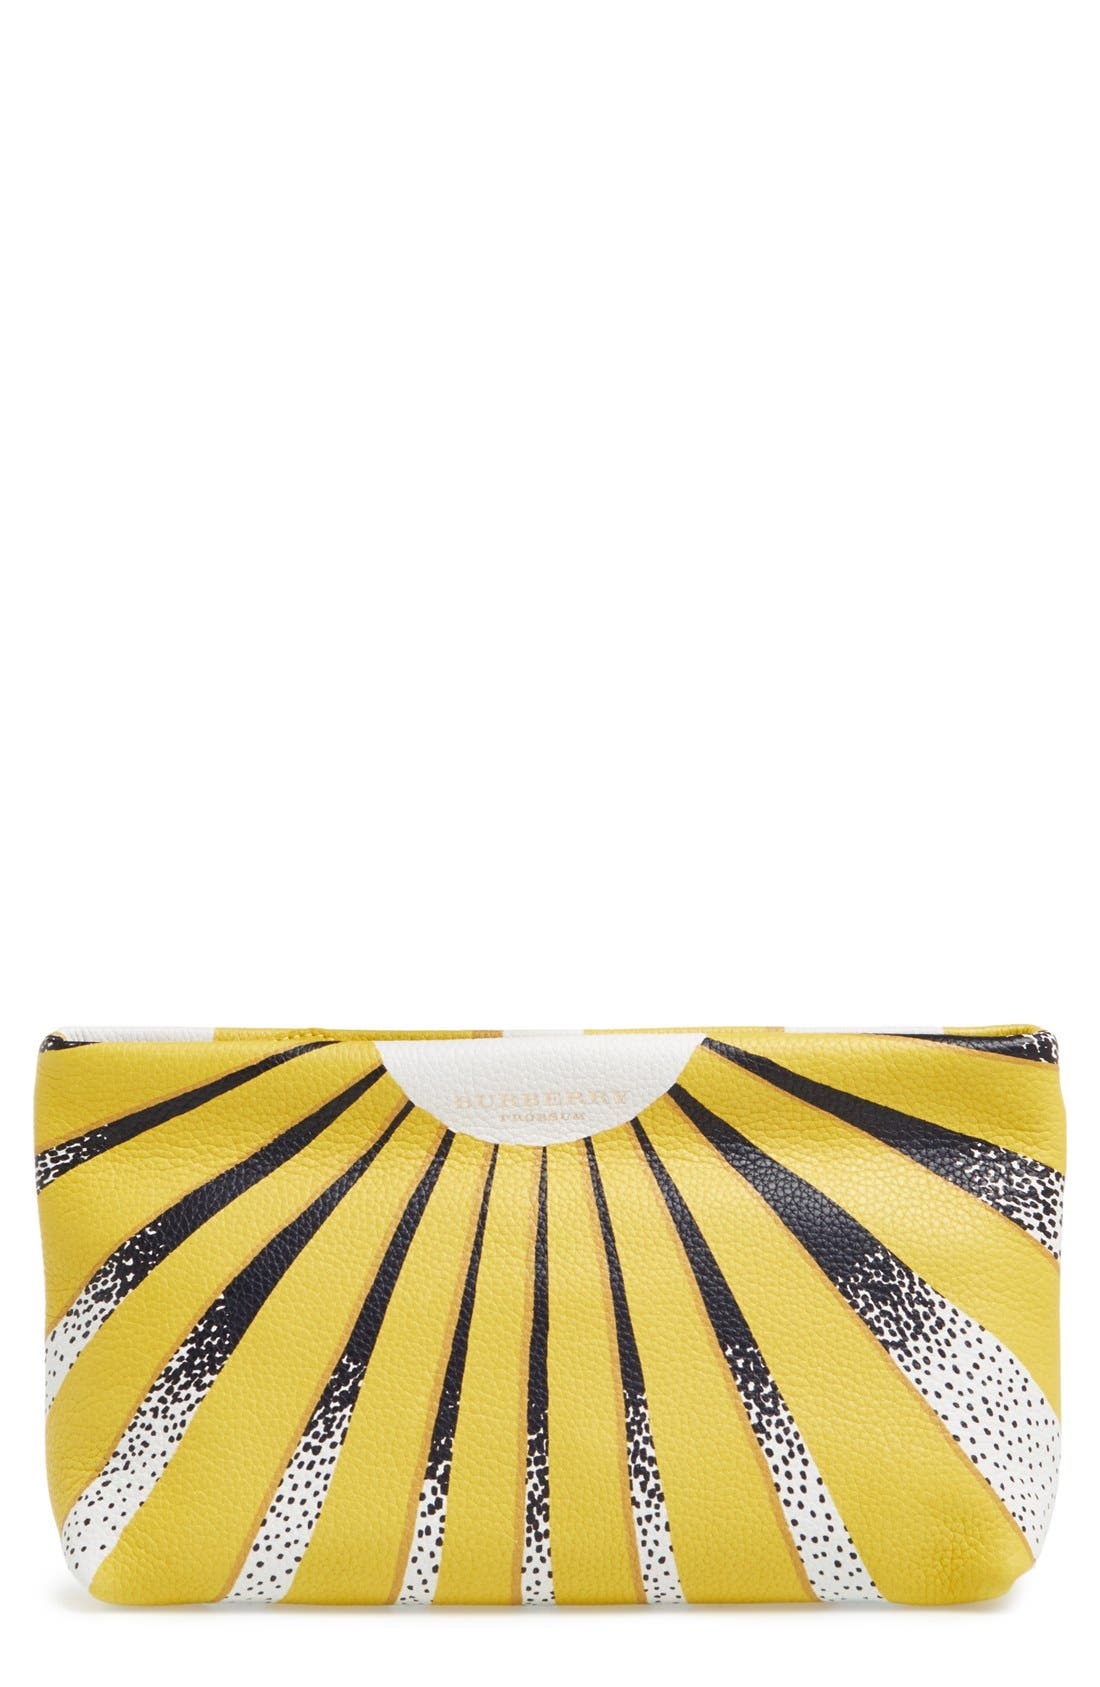 Main Image - Burberry Leather Clutch